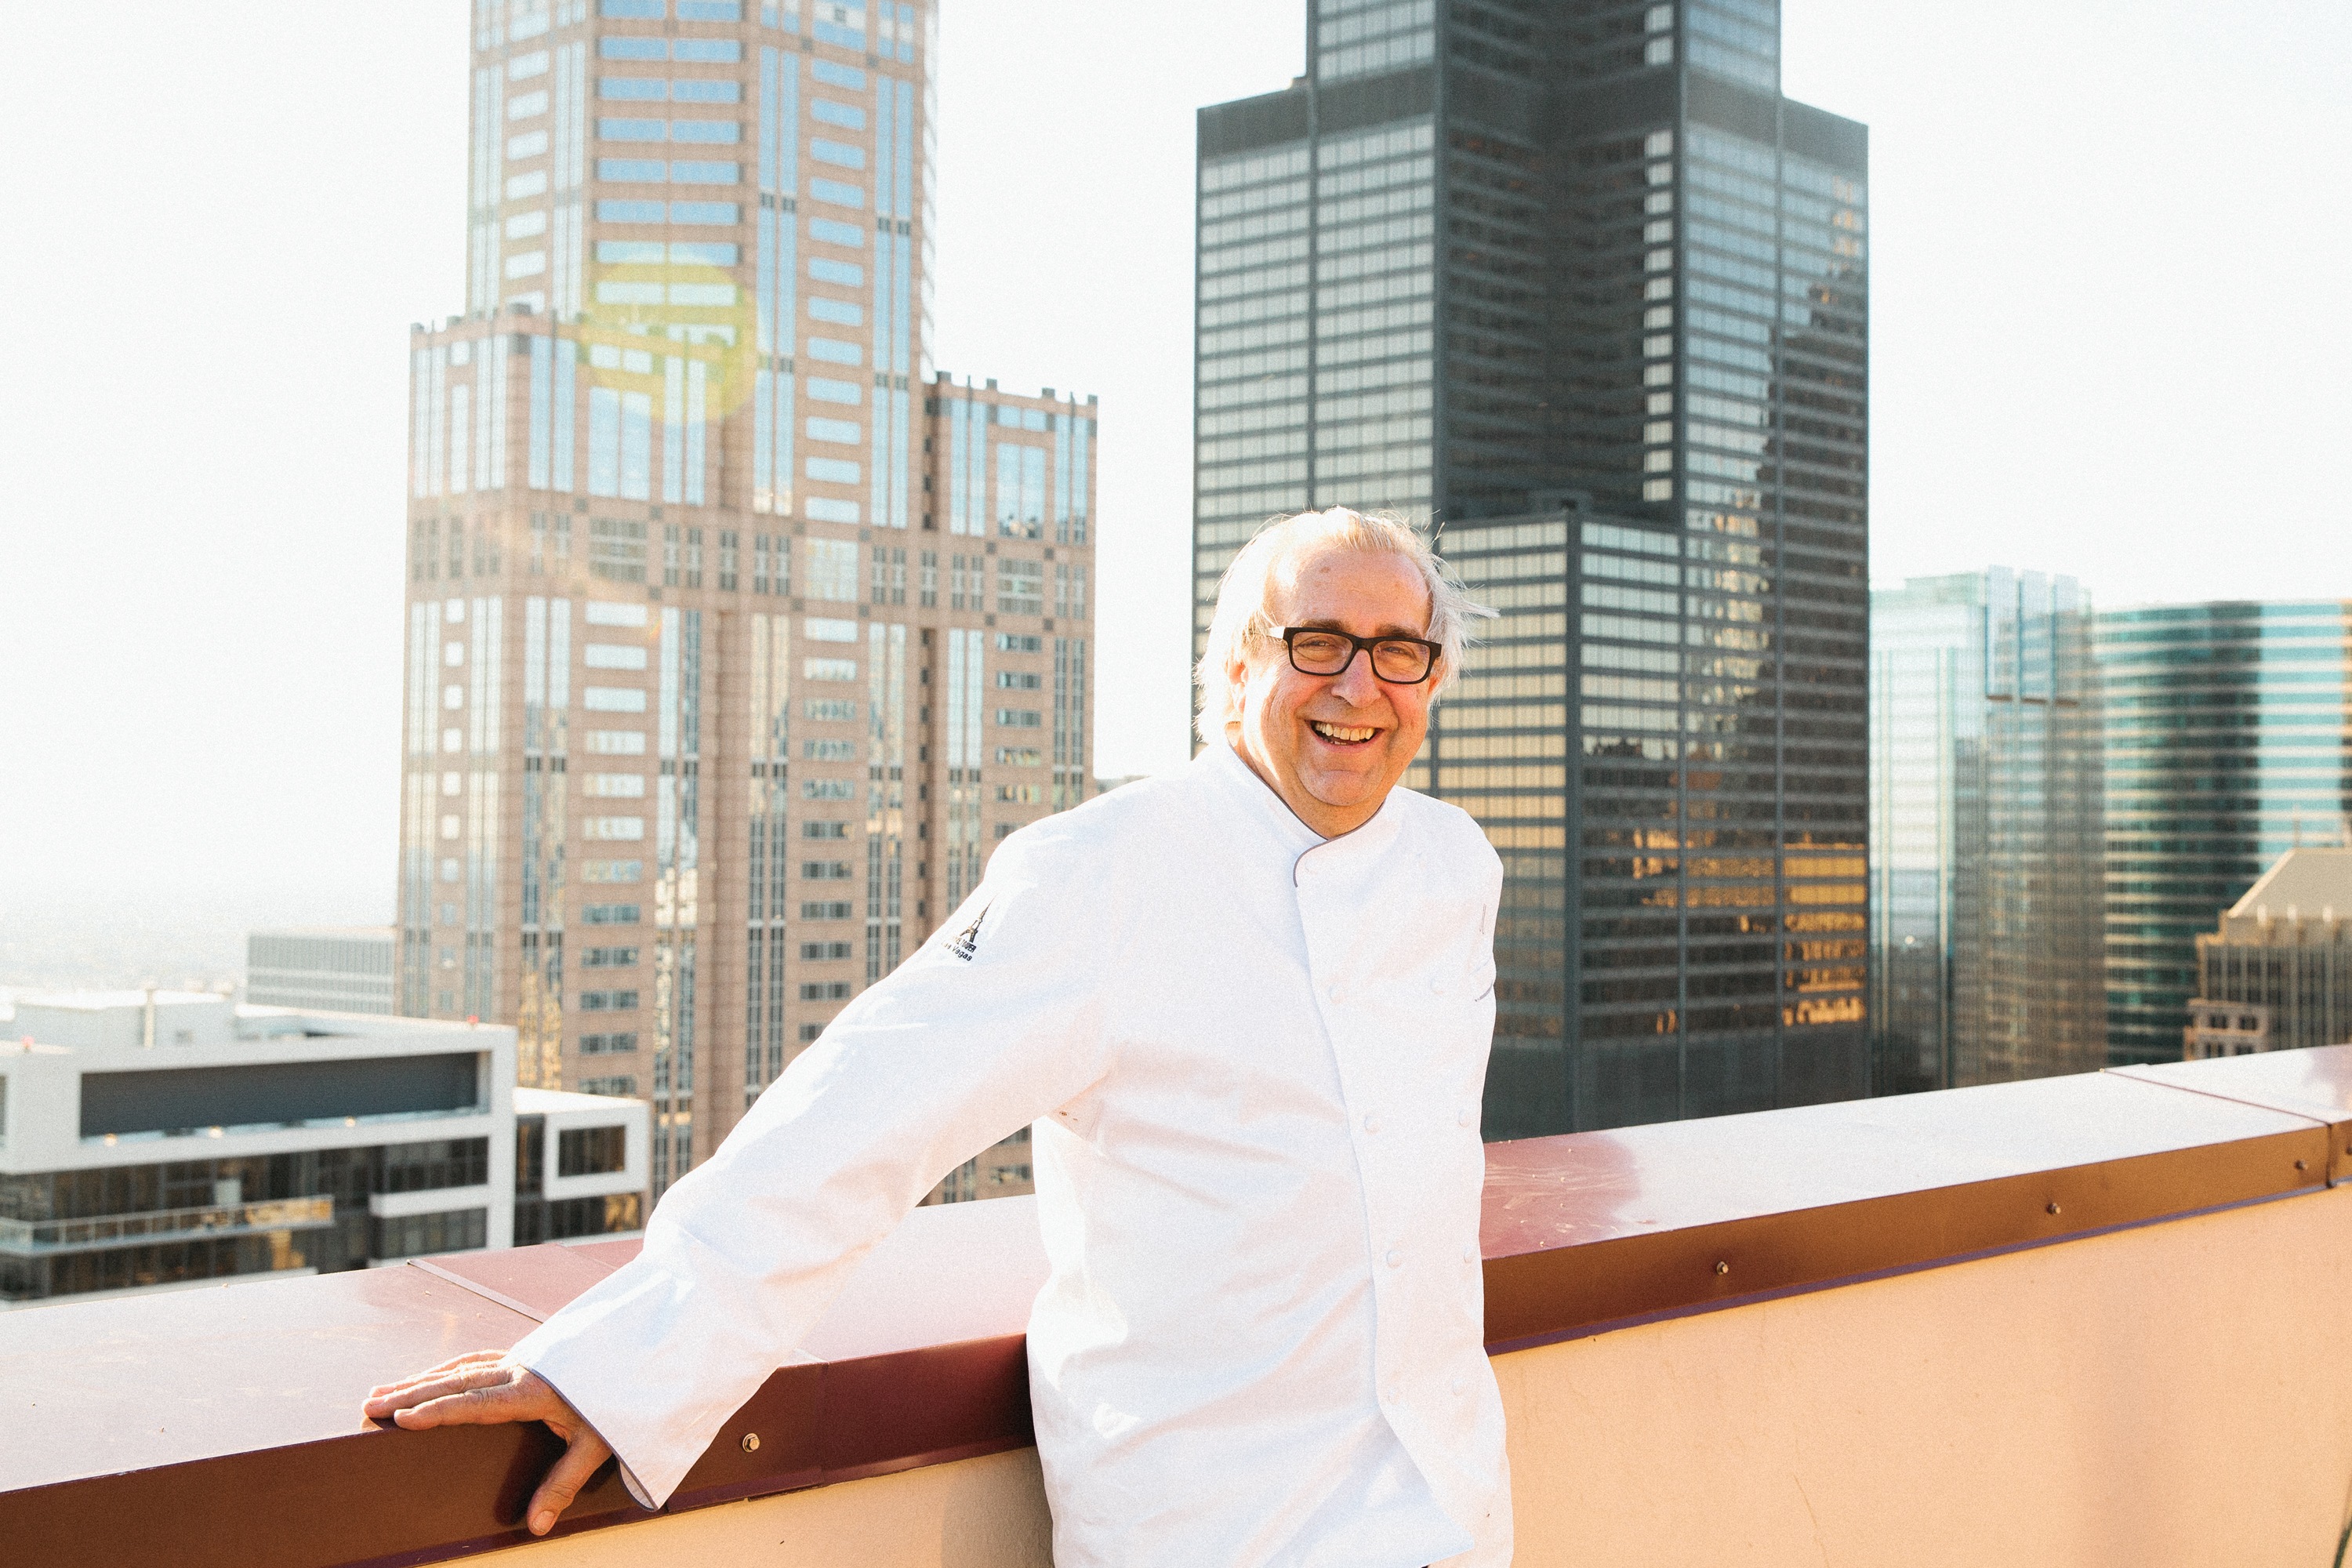 Chef Jean Joho standing outside with the city skyline behind him